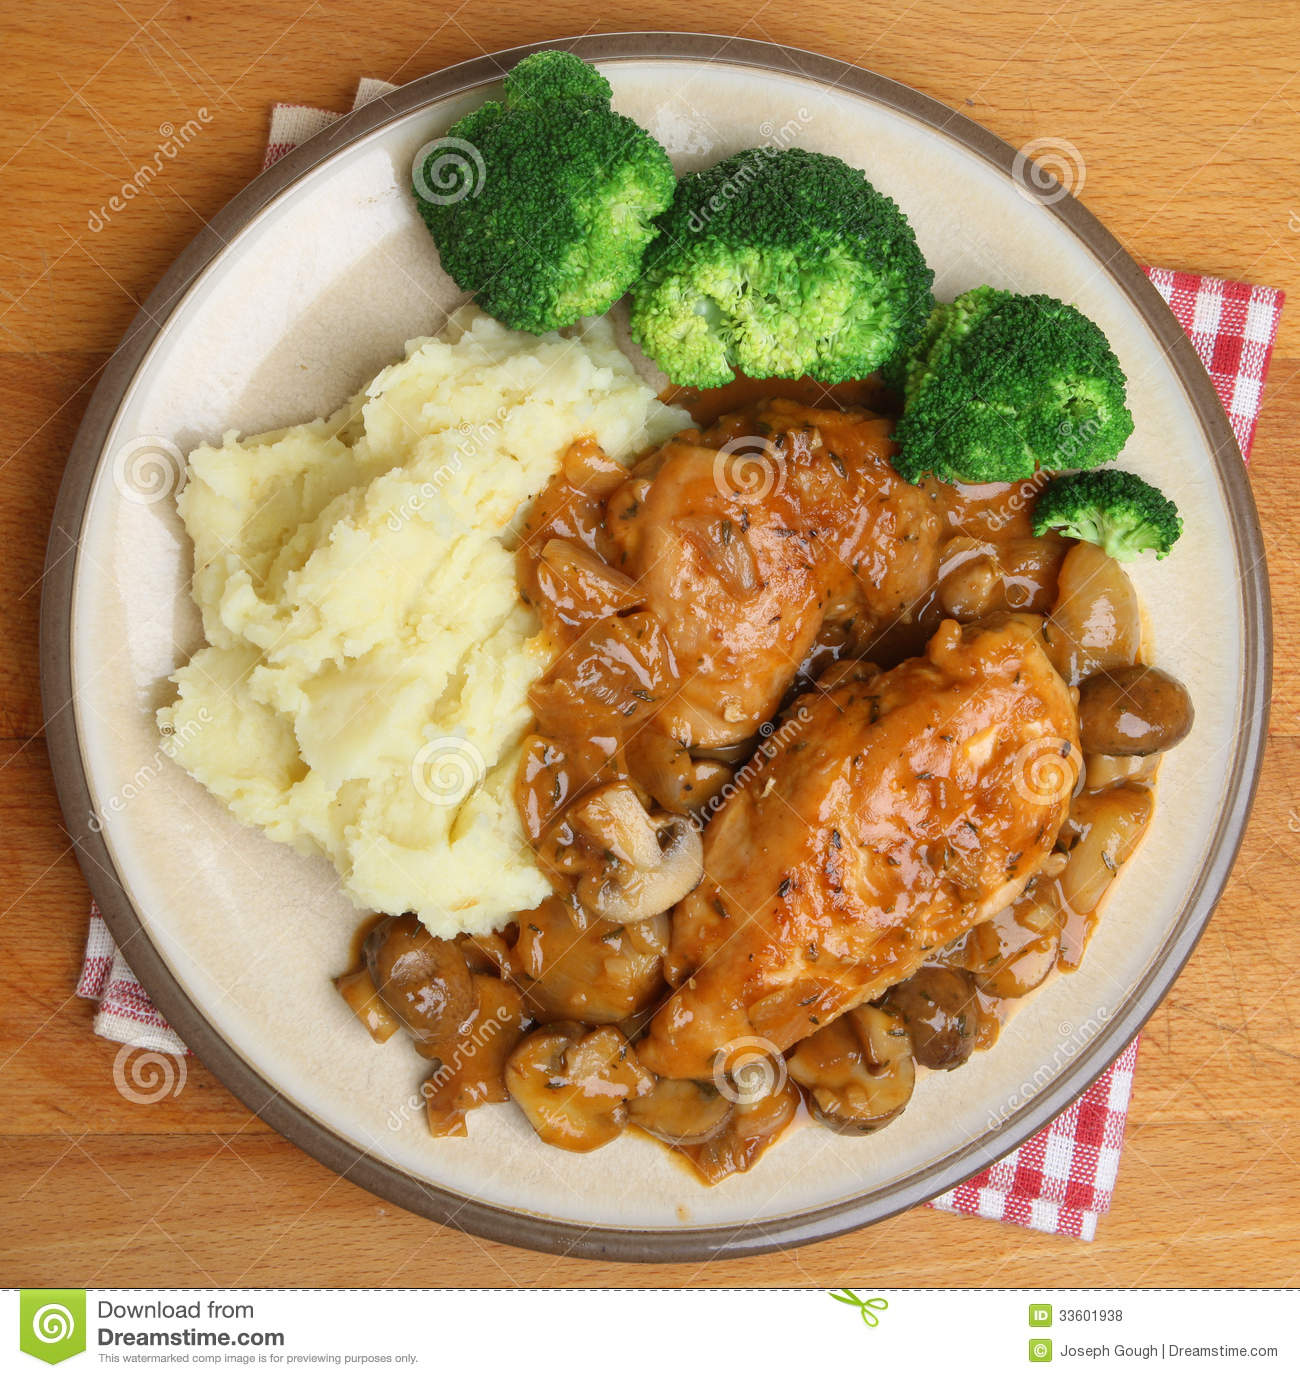 Chicken Chasseur Dinner Royalty Free Stock Photos Image